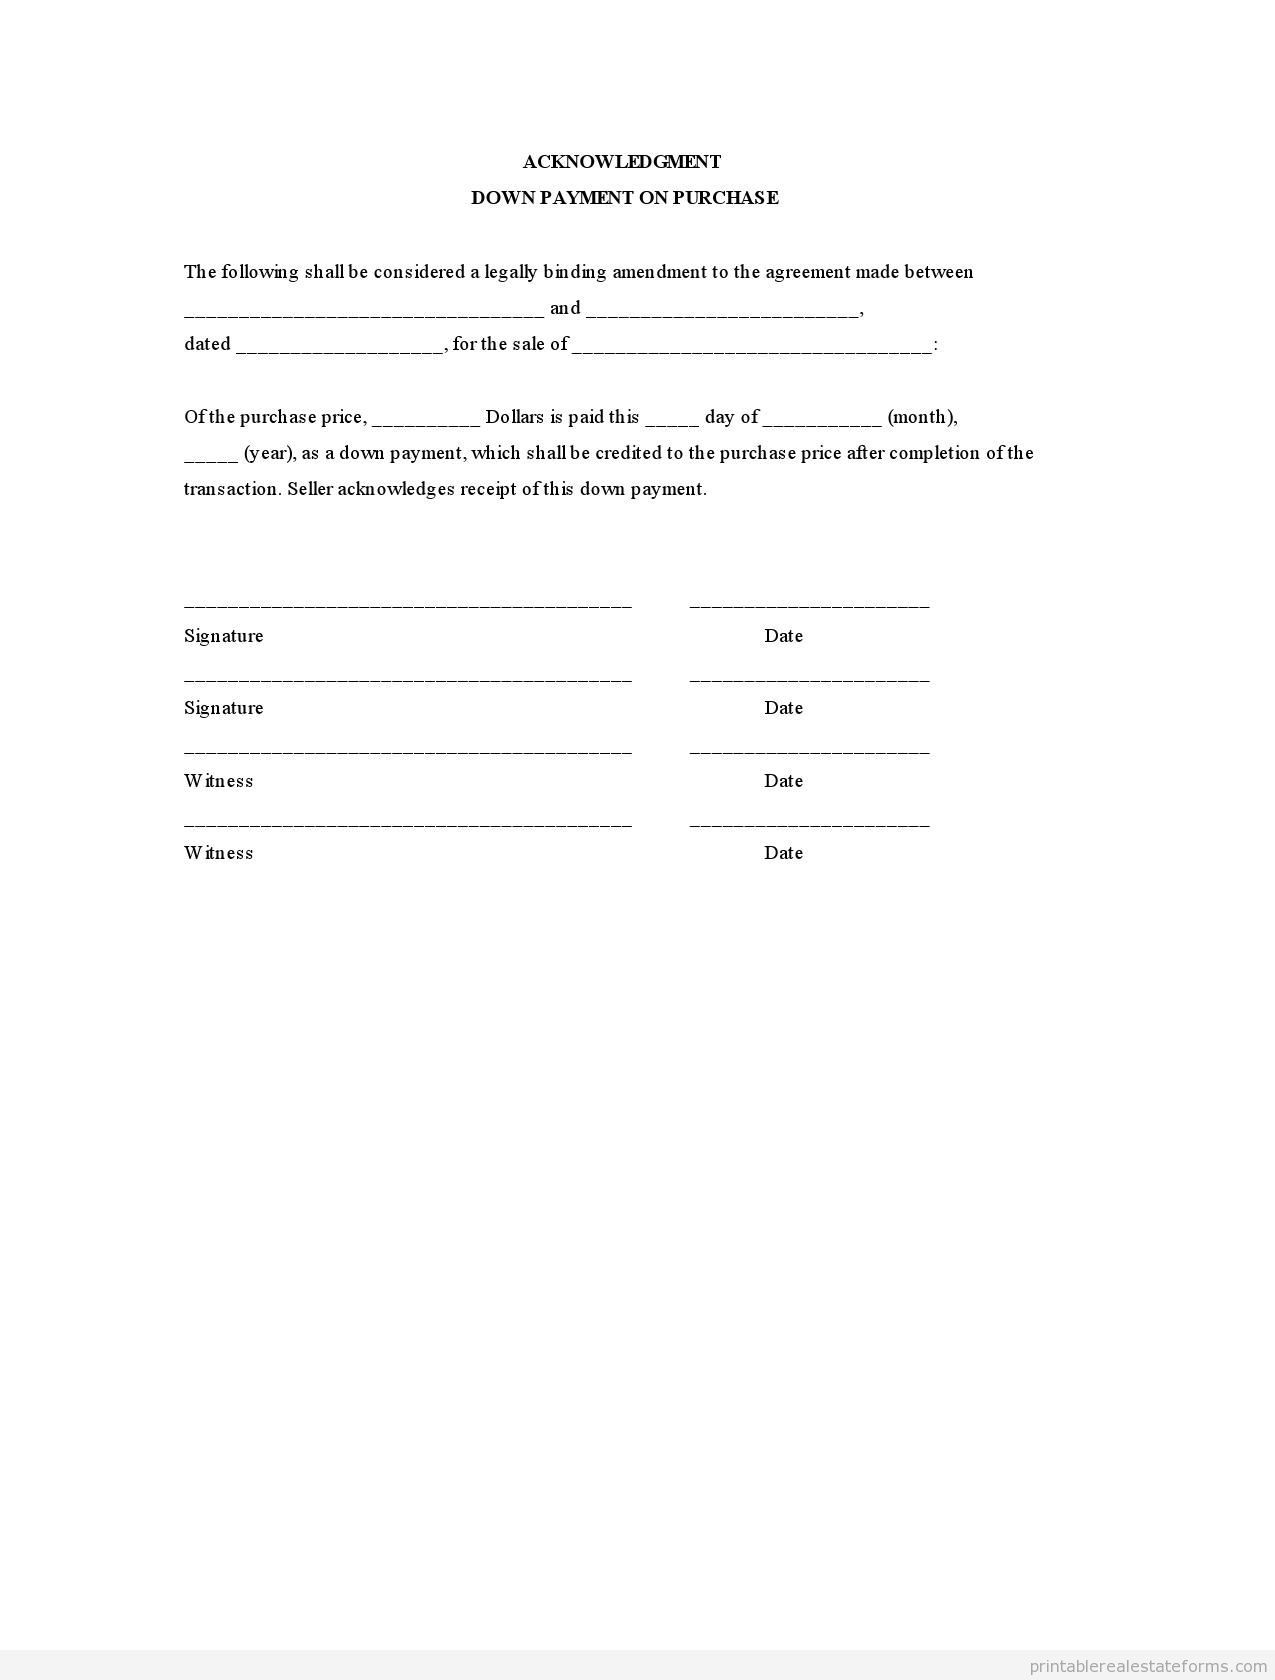 Amazing Sample Printable Acknowledgment Down Payment On Purchase Form